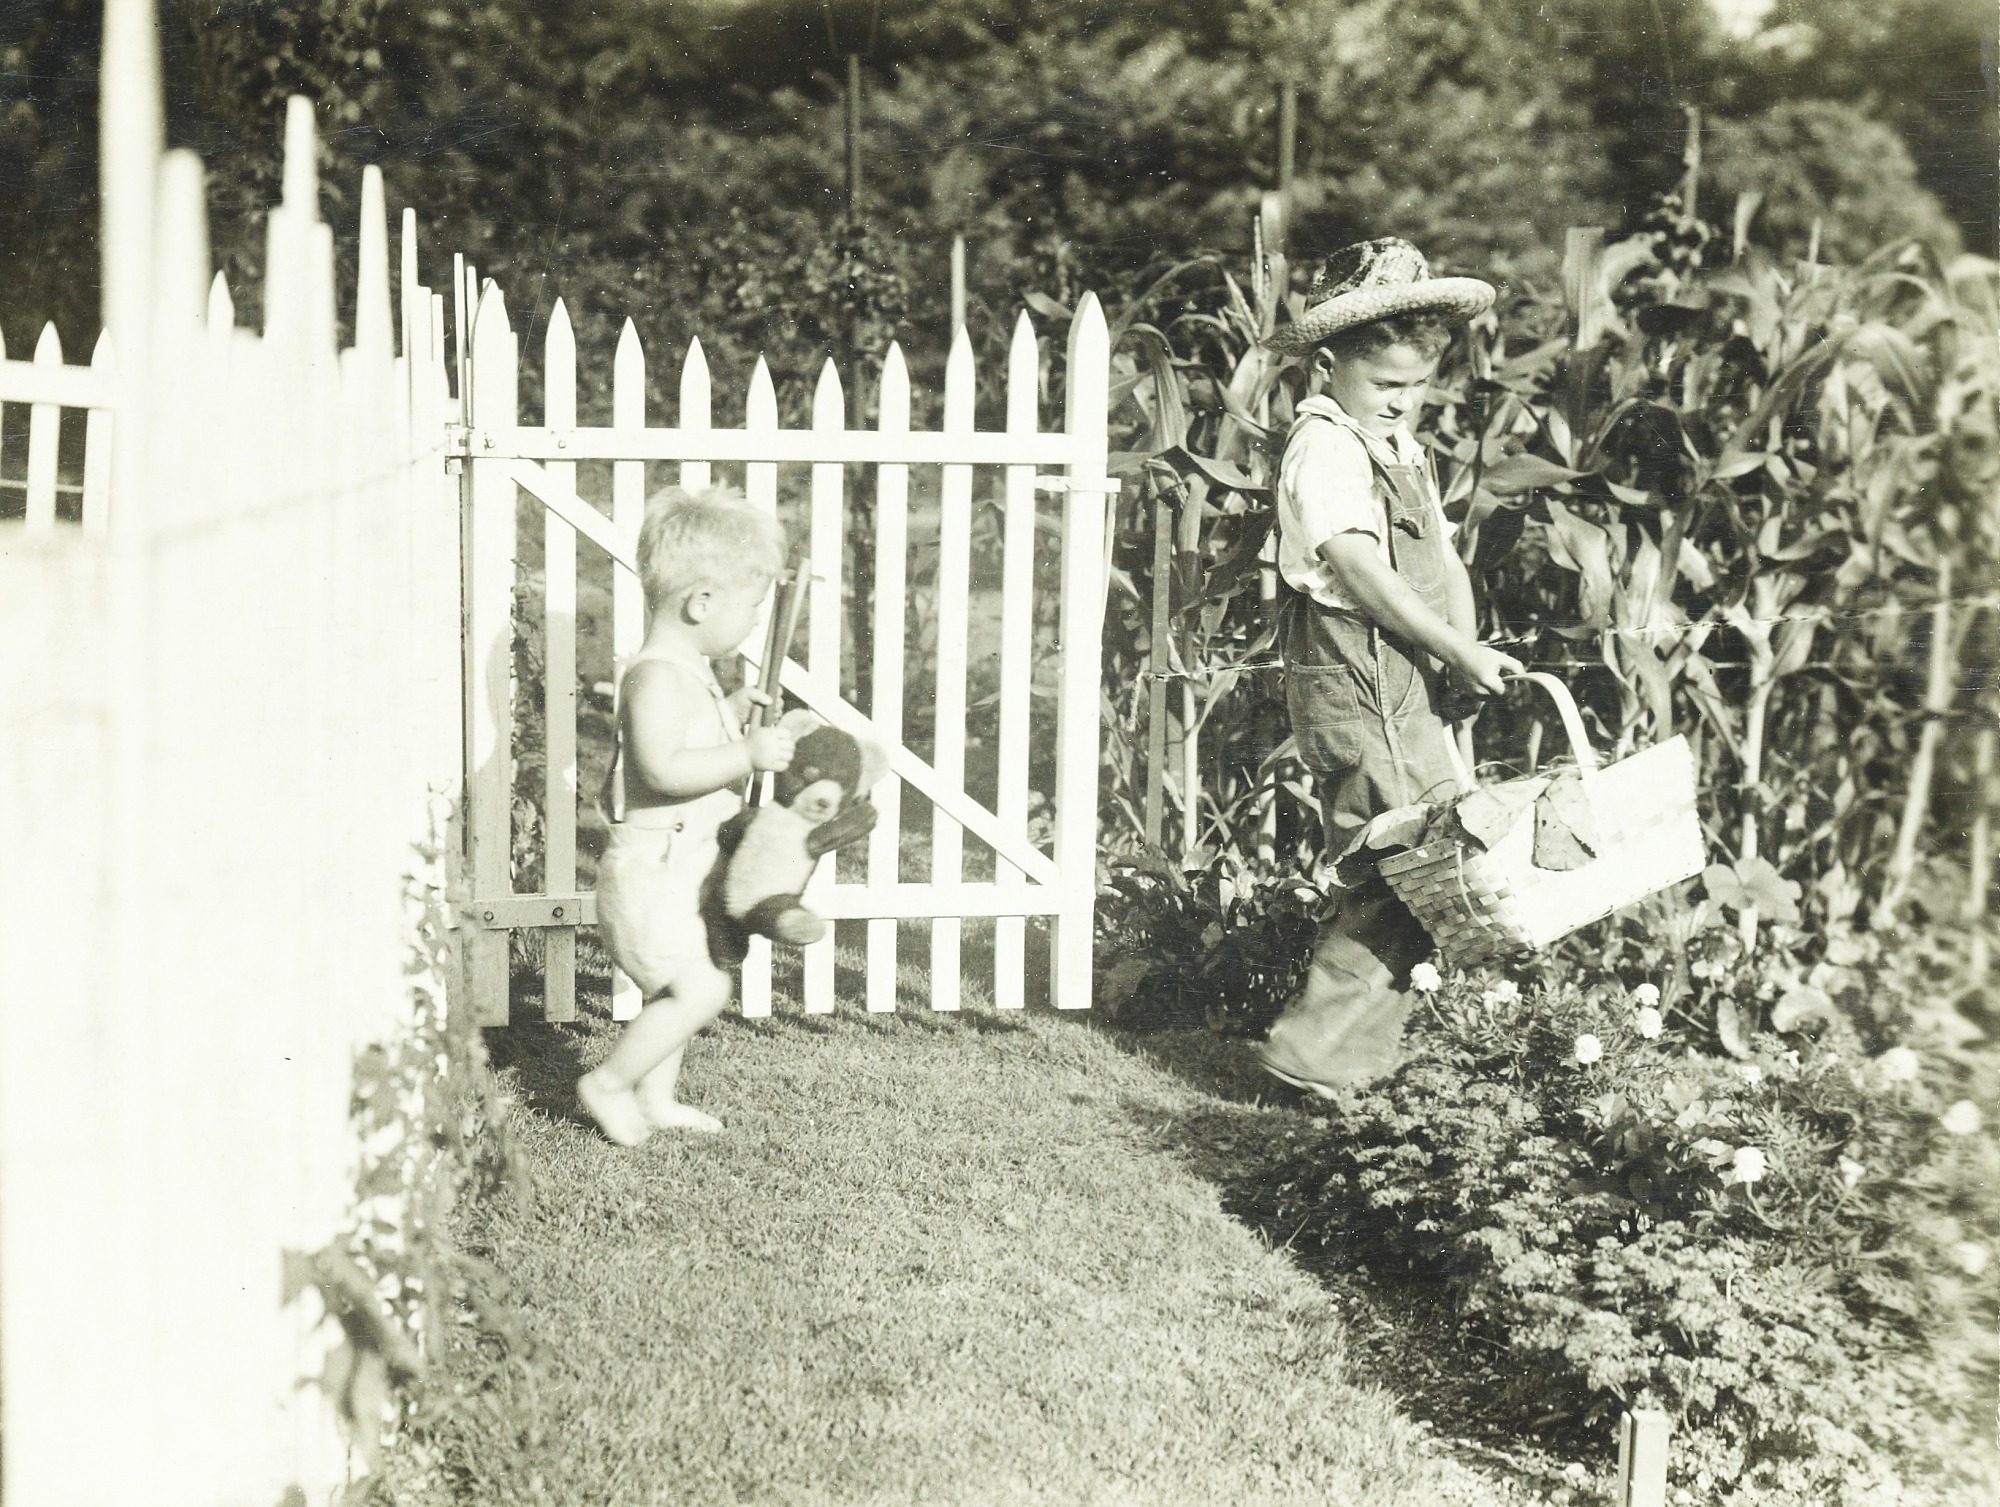 Victory garden at Breeze Hill, Harrisburg, Pennsylvania, July 11, 1942